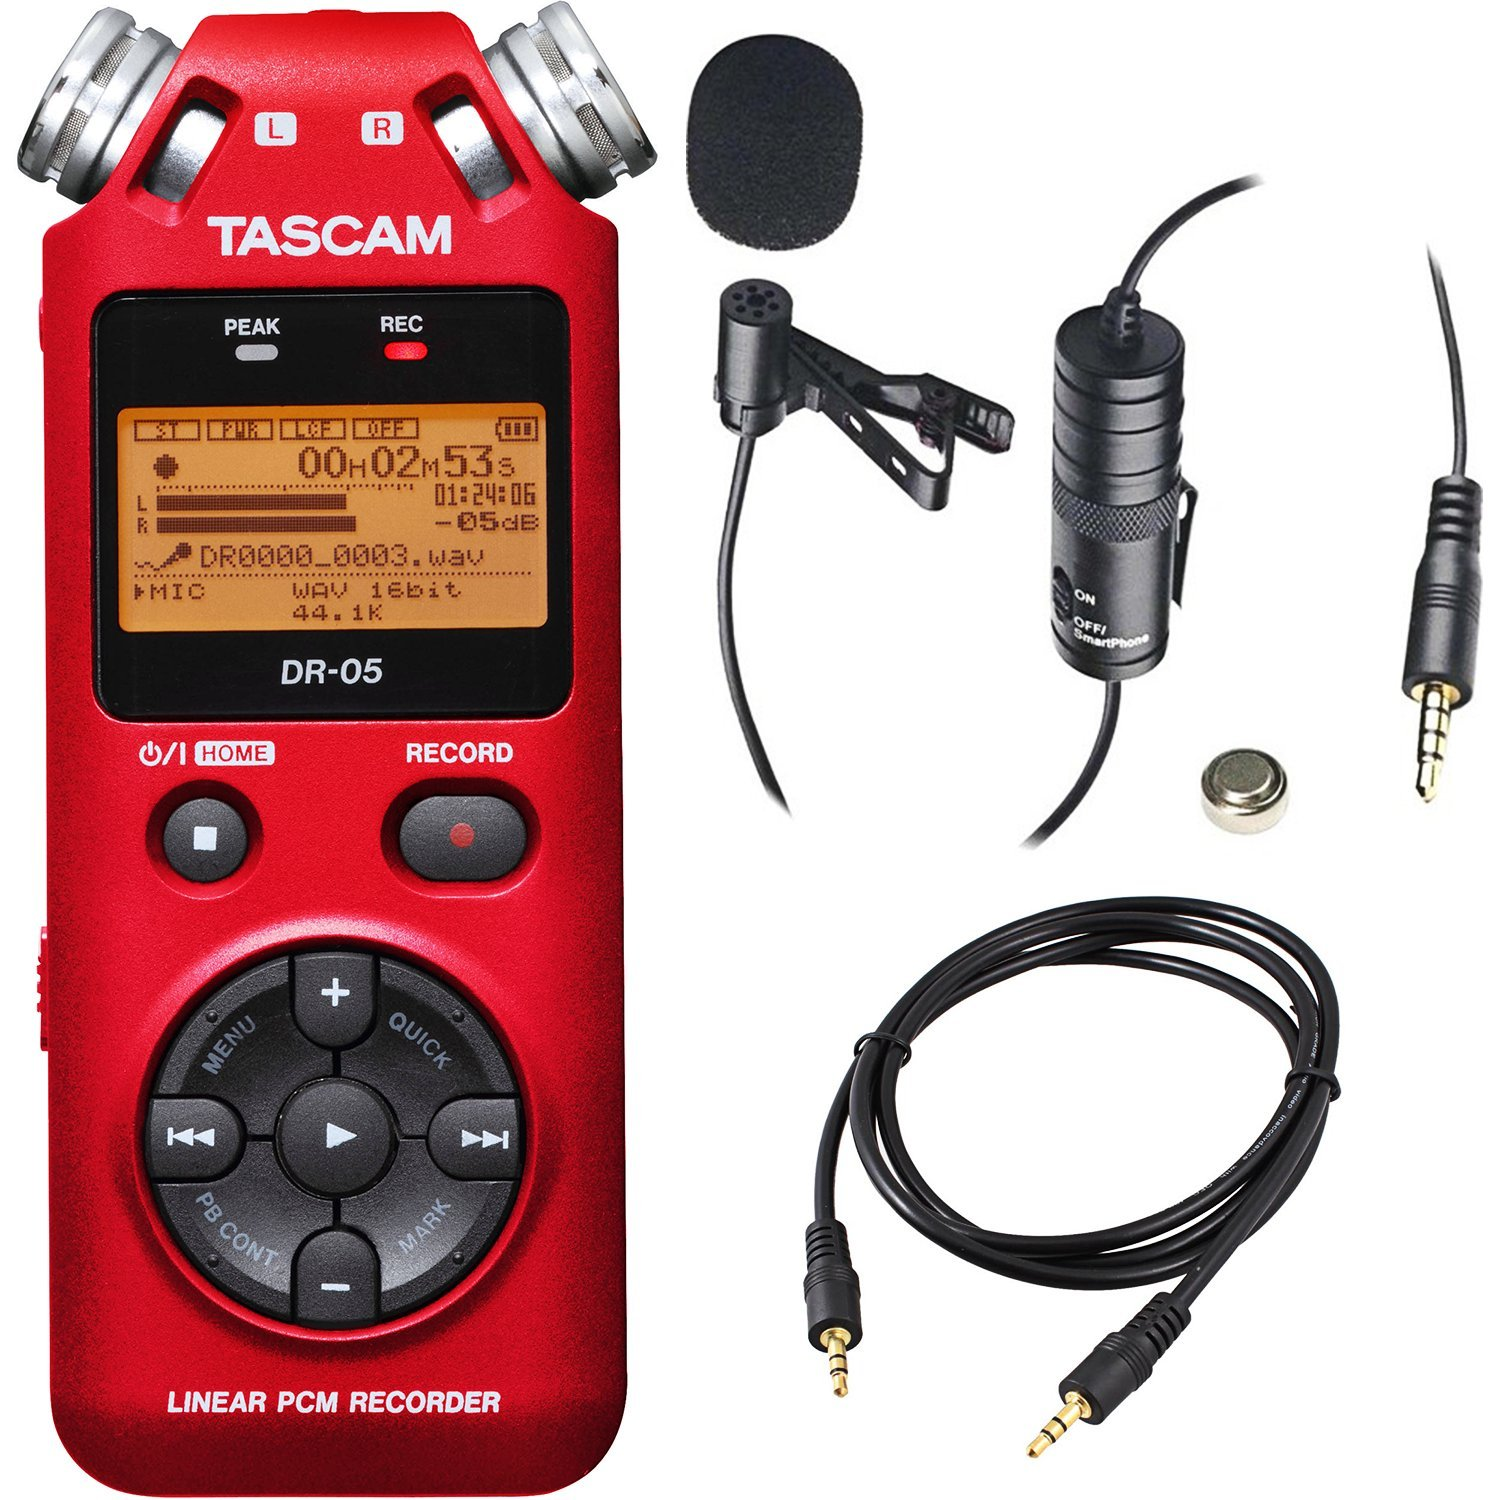 Tascam DR-05 Portable Handheld Digital Audio Recorder (Red) with Deluxe accessory bundle by Tascam (Image #1)